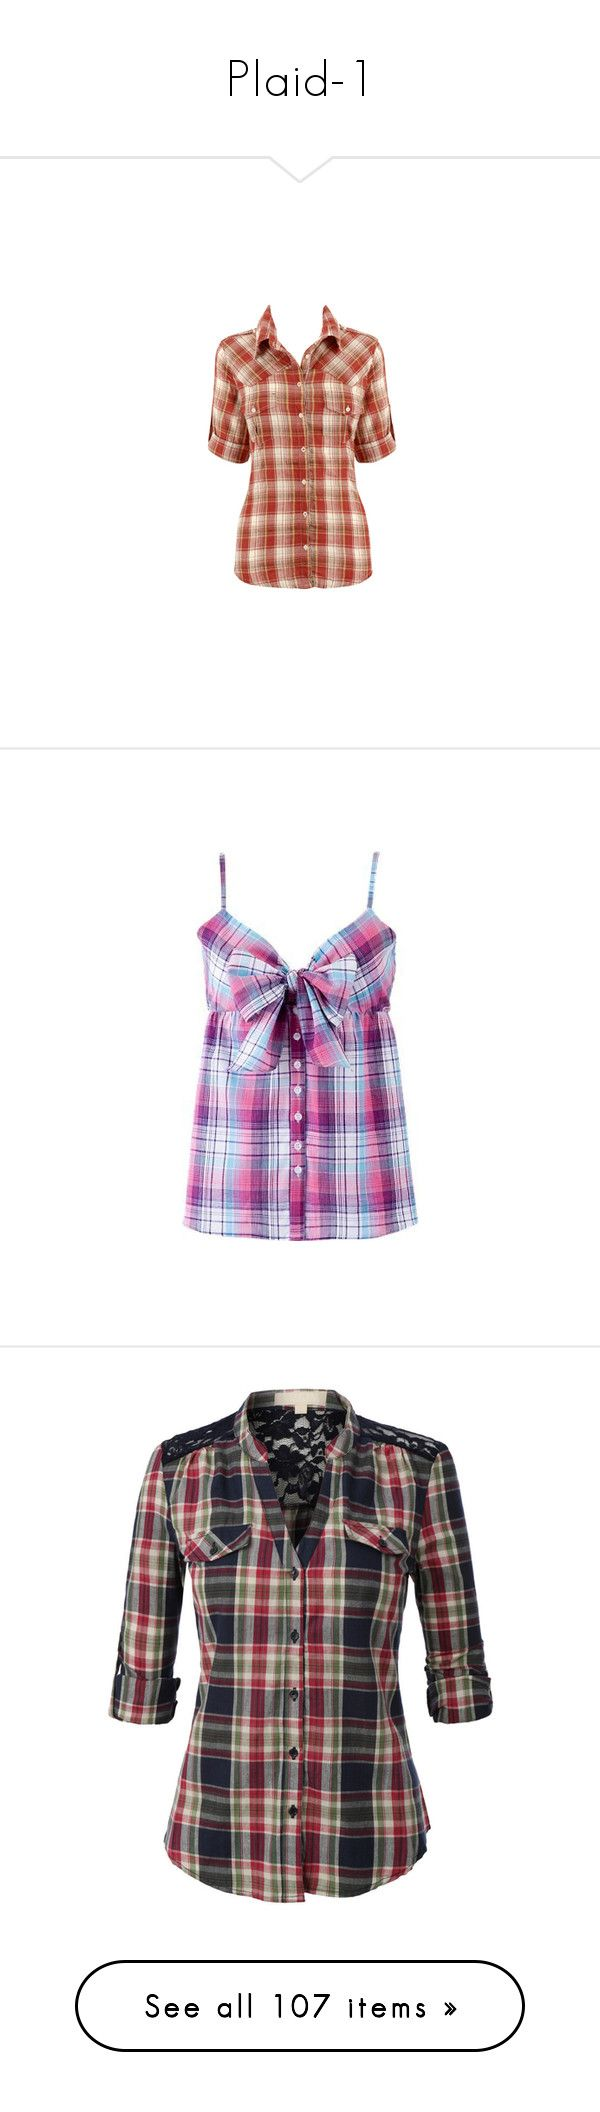 """Plaid-1"" by missy-smallen ❤ liked on Polyvore featuring tops, shirts, blusas, peacock feather shirt, shirt top, peacock shirt, peacock top, peacock print top, tanks and casual tops"